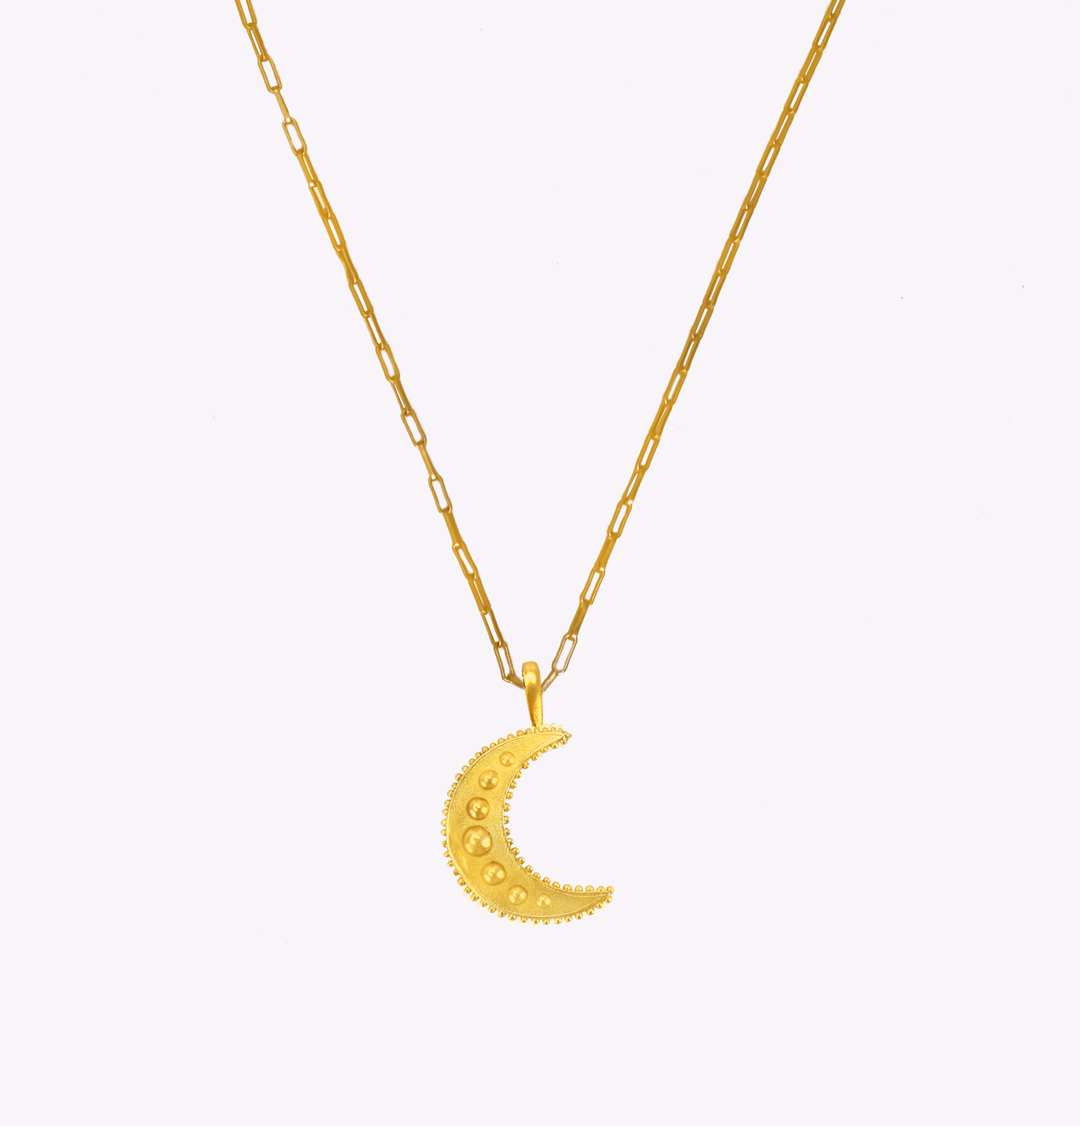 Moonlight Oblong Long Chain Necklace